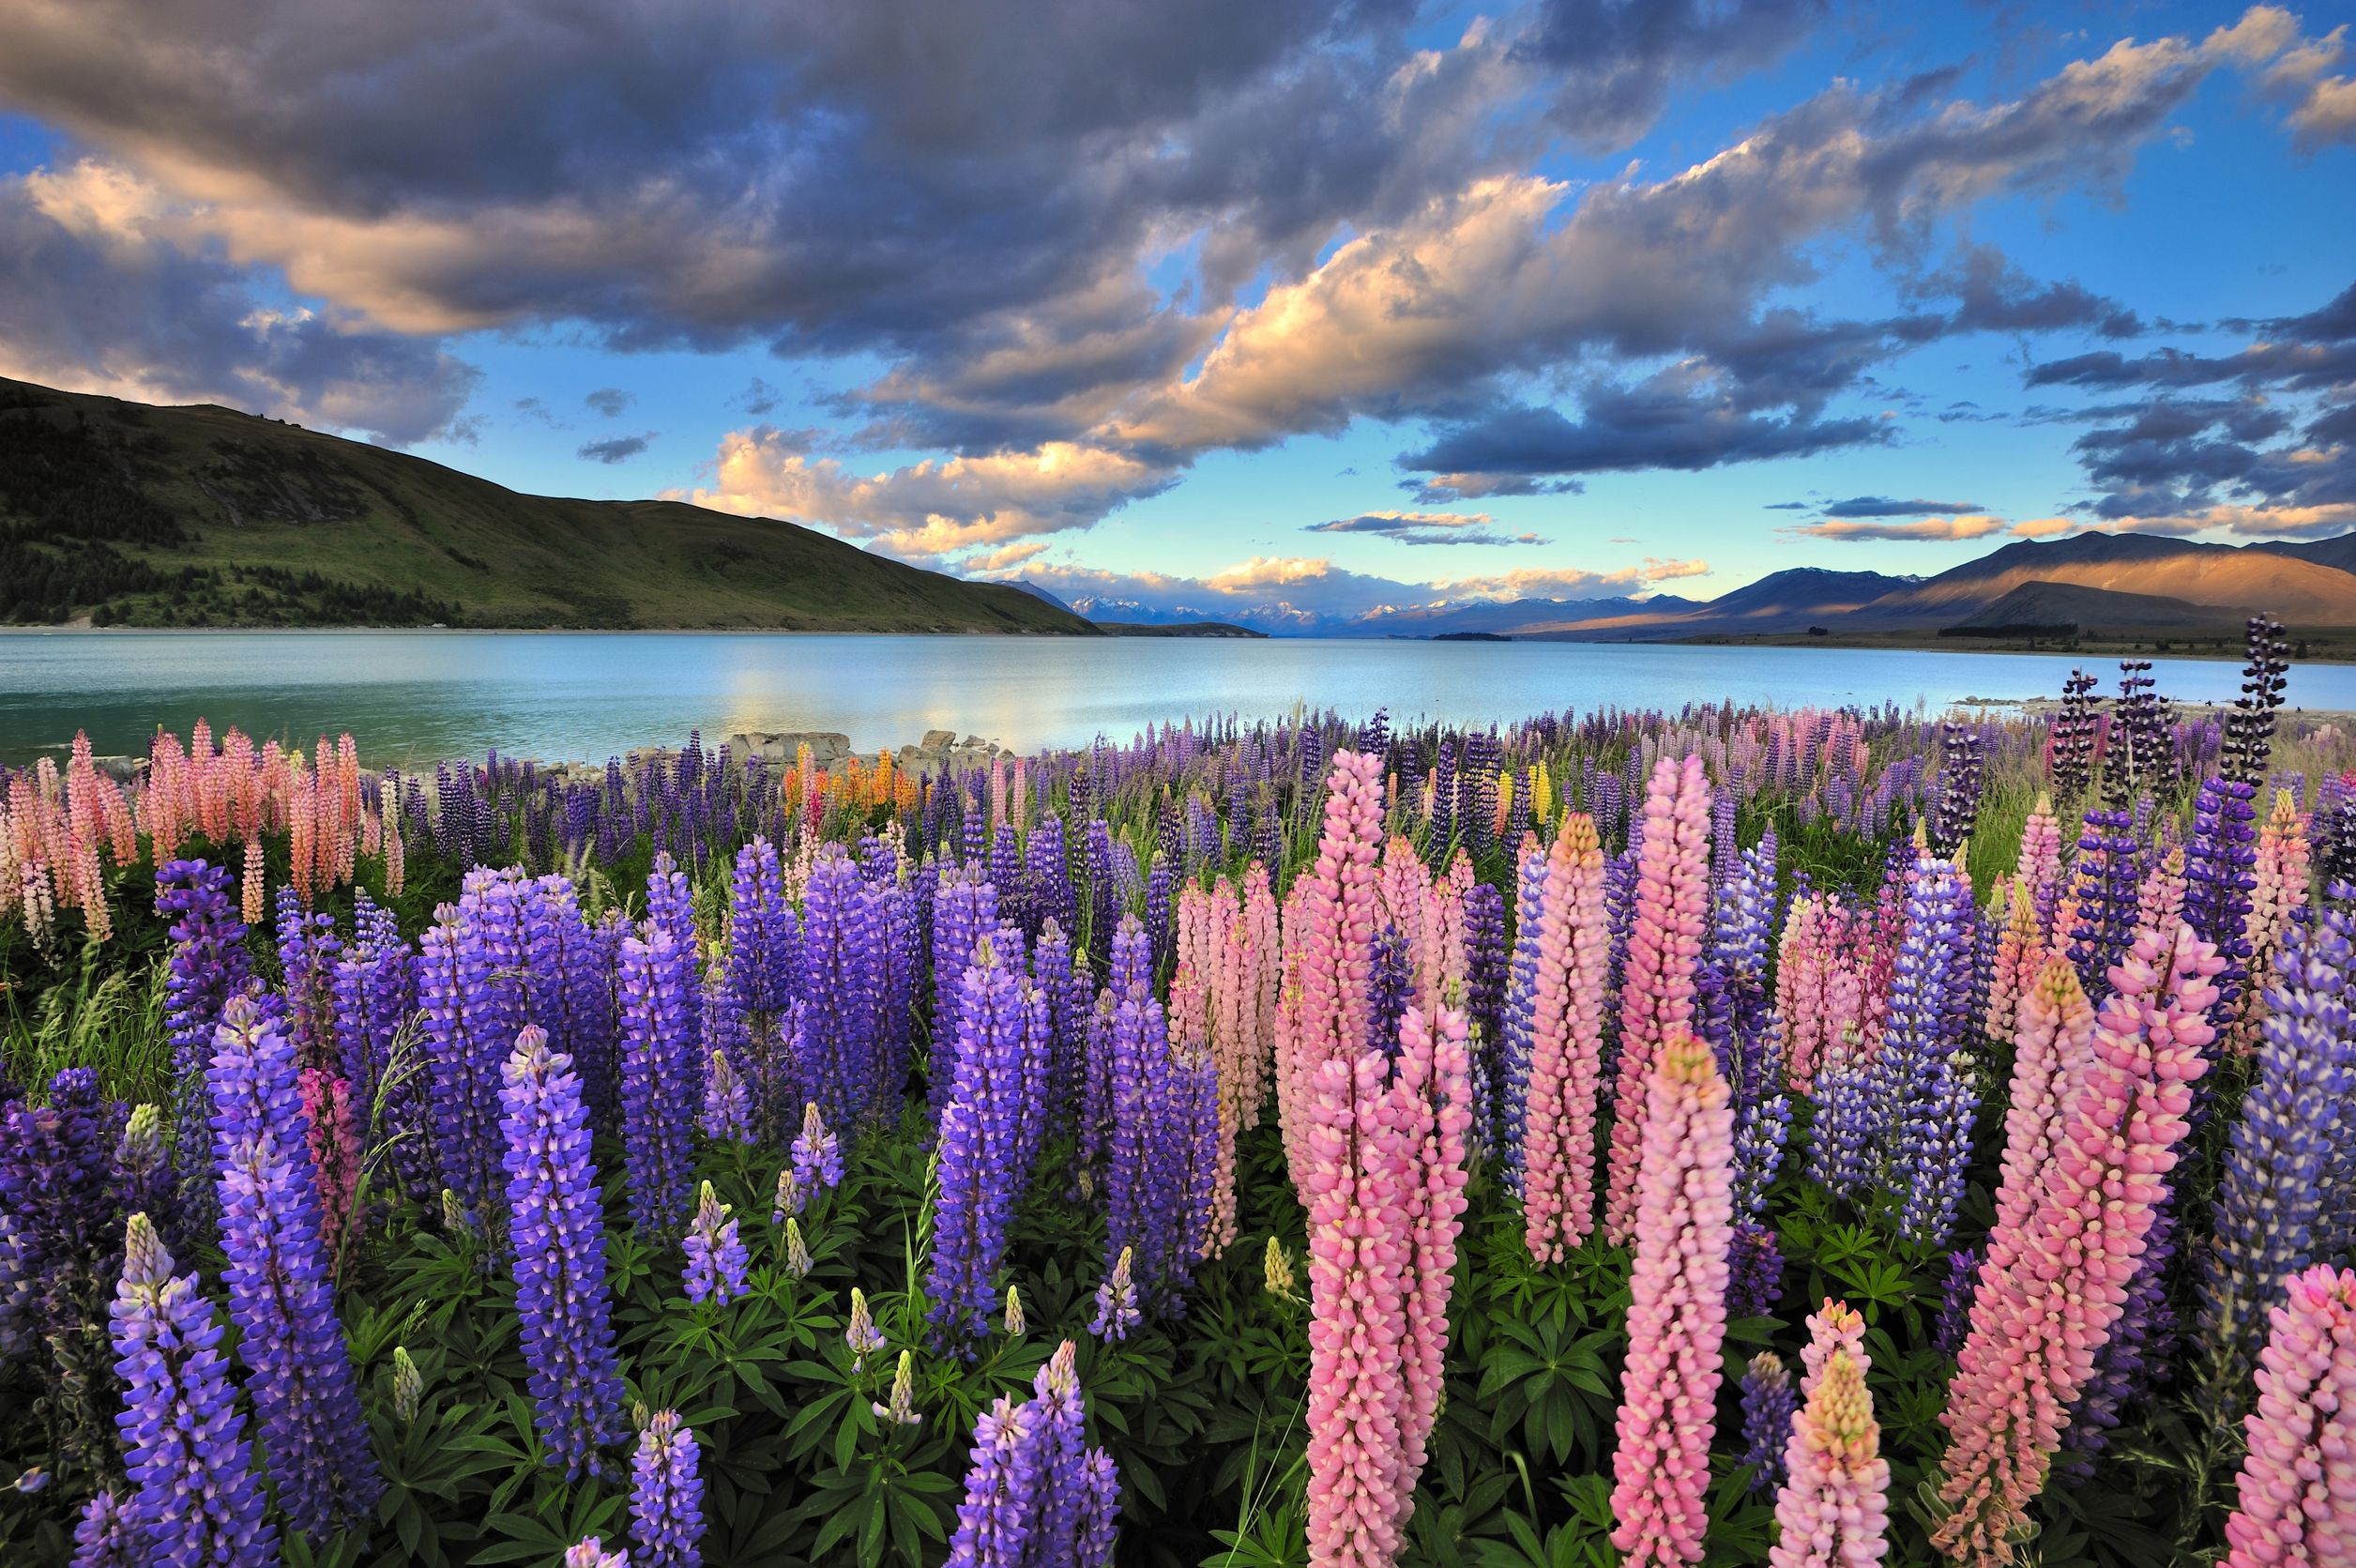 new zealand flowers and lake 123rf